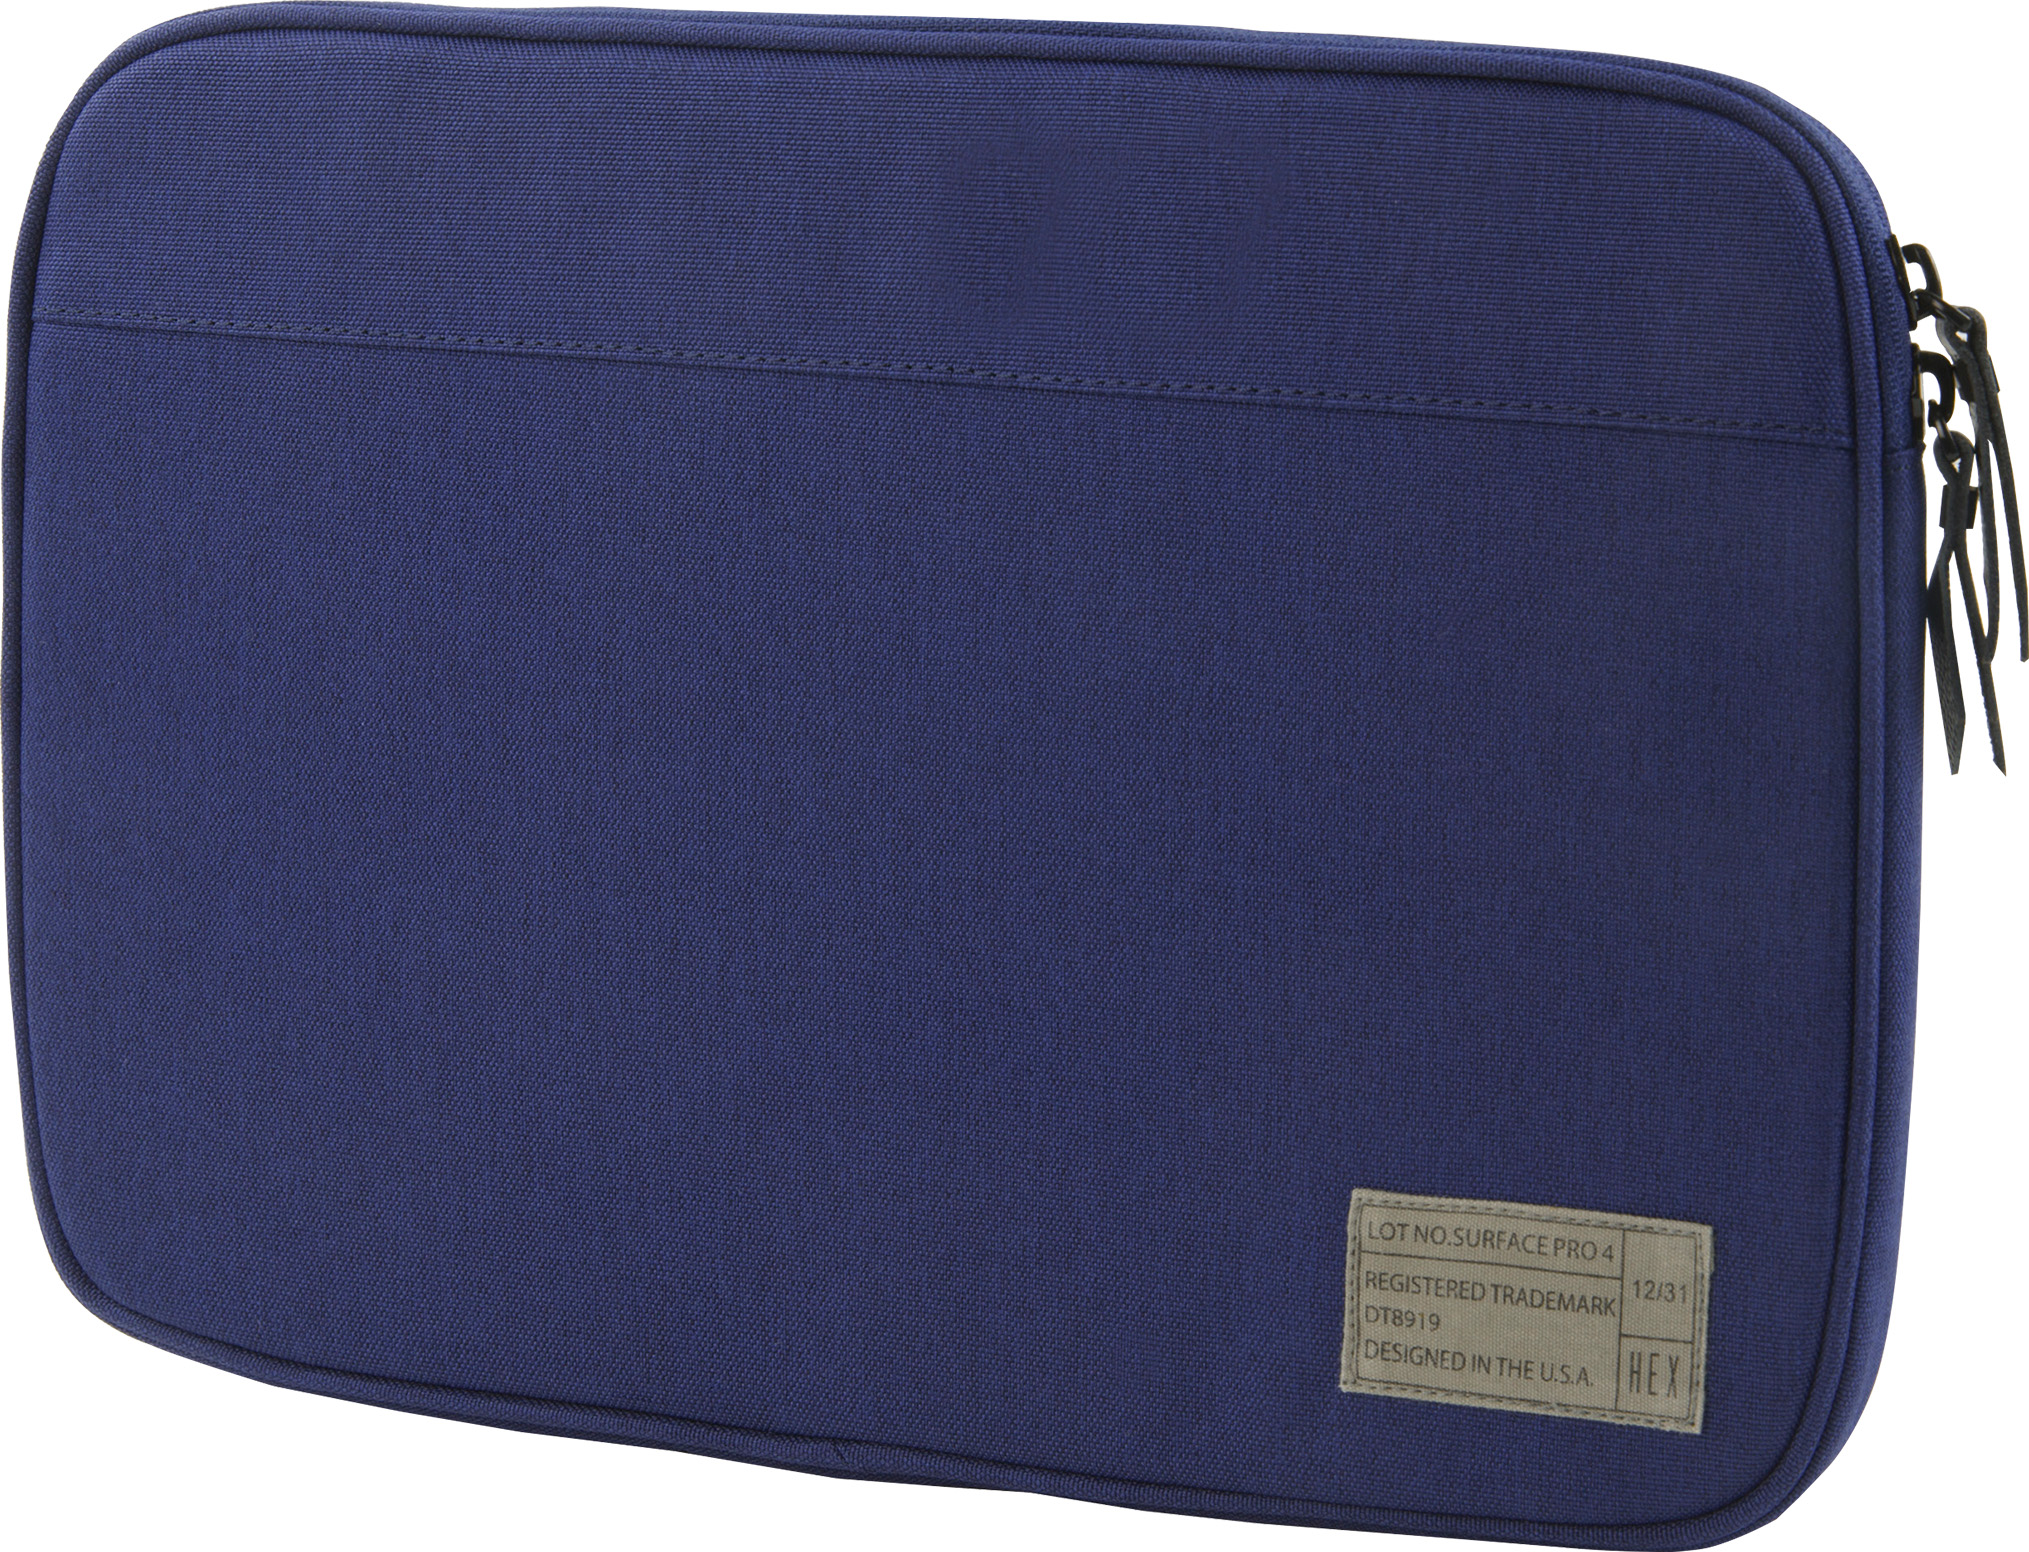 HEX Surface Pro 4 Sleeve with Rear Pocket (Blue) Deal